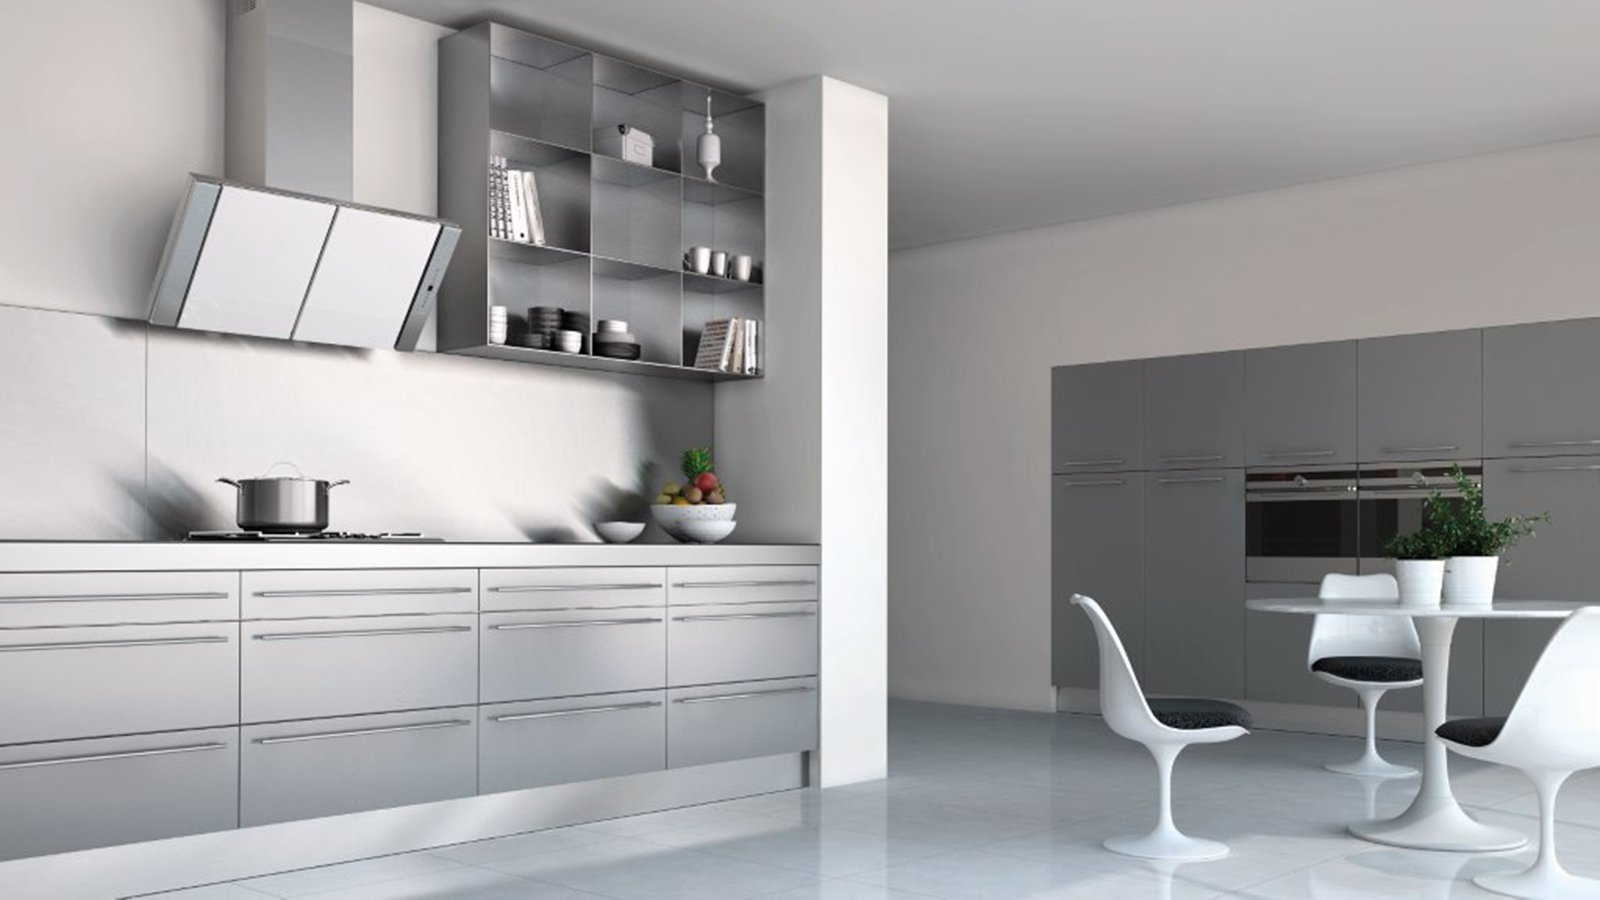 Cappe cucine moderne great la cappa in cucina with cappe for Cappe moderne